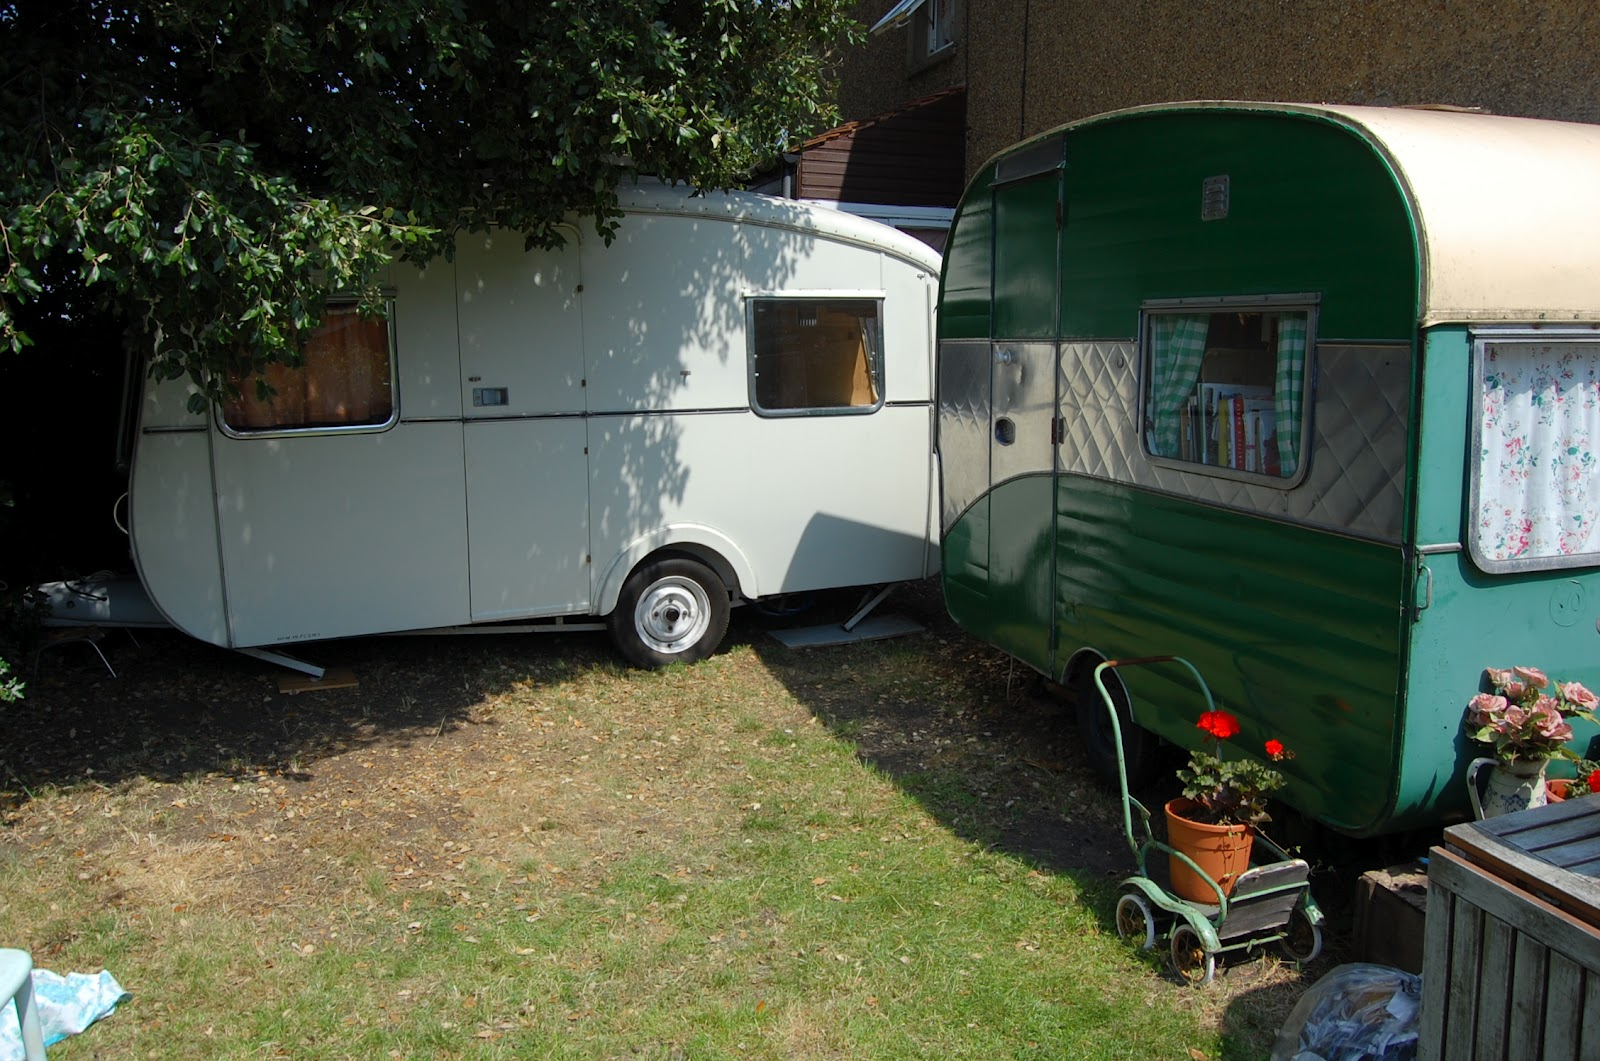 vintage caravan section brilliant if you are smitten about your vintage caravan vehicle and want to show it off and get a little publicity even